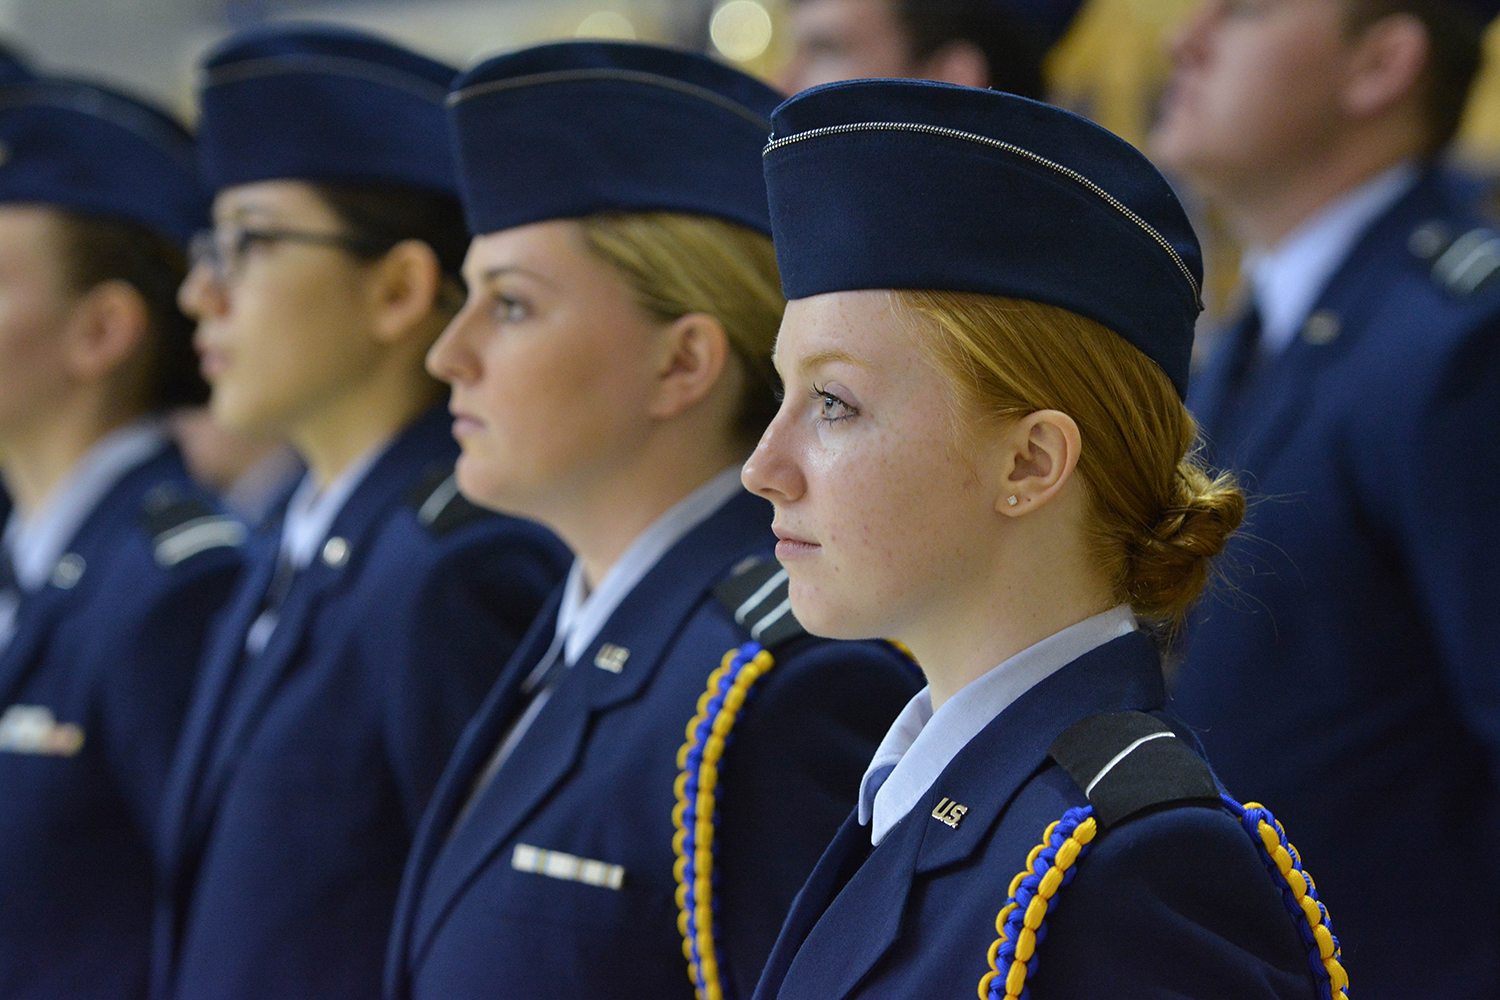 Female ROTC students stand at attention during the ceremony.